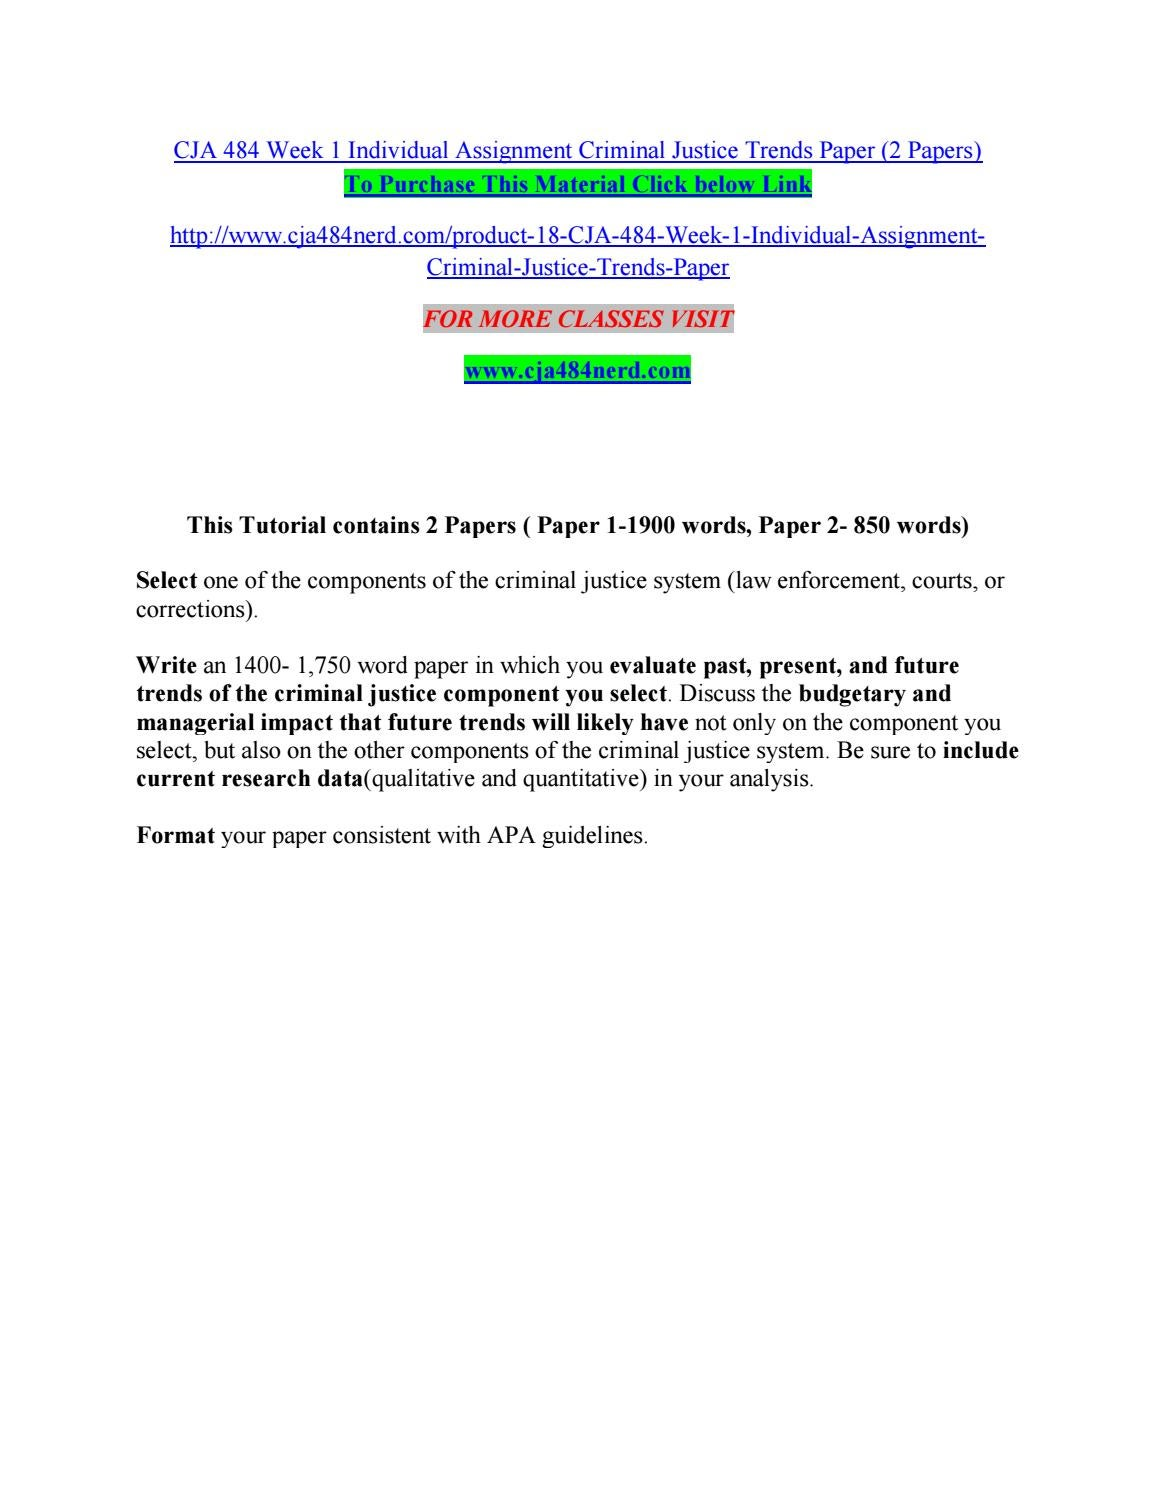 criminal justice trends evaluation essay example